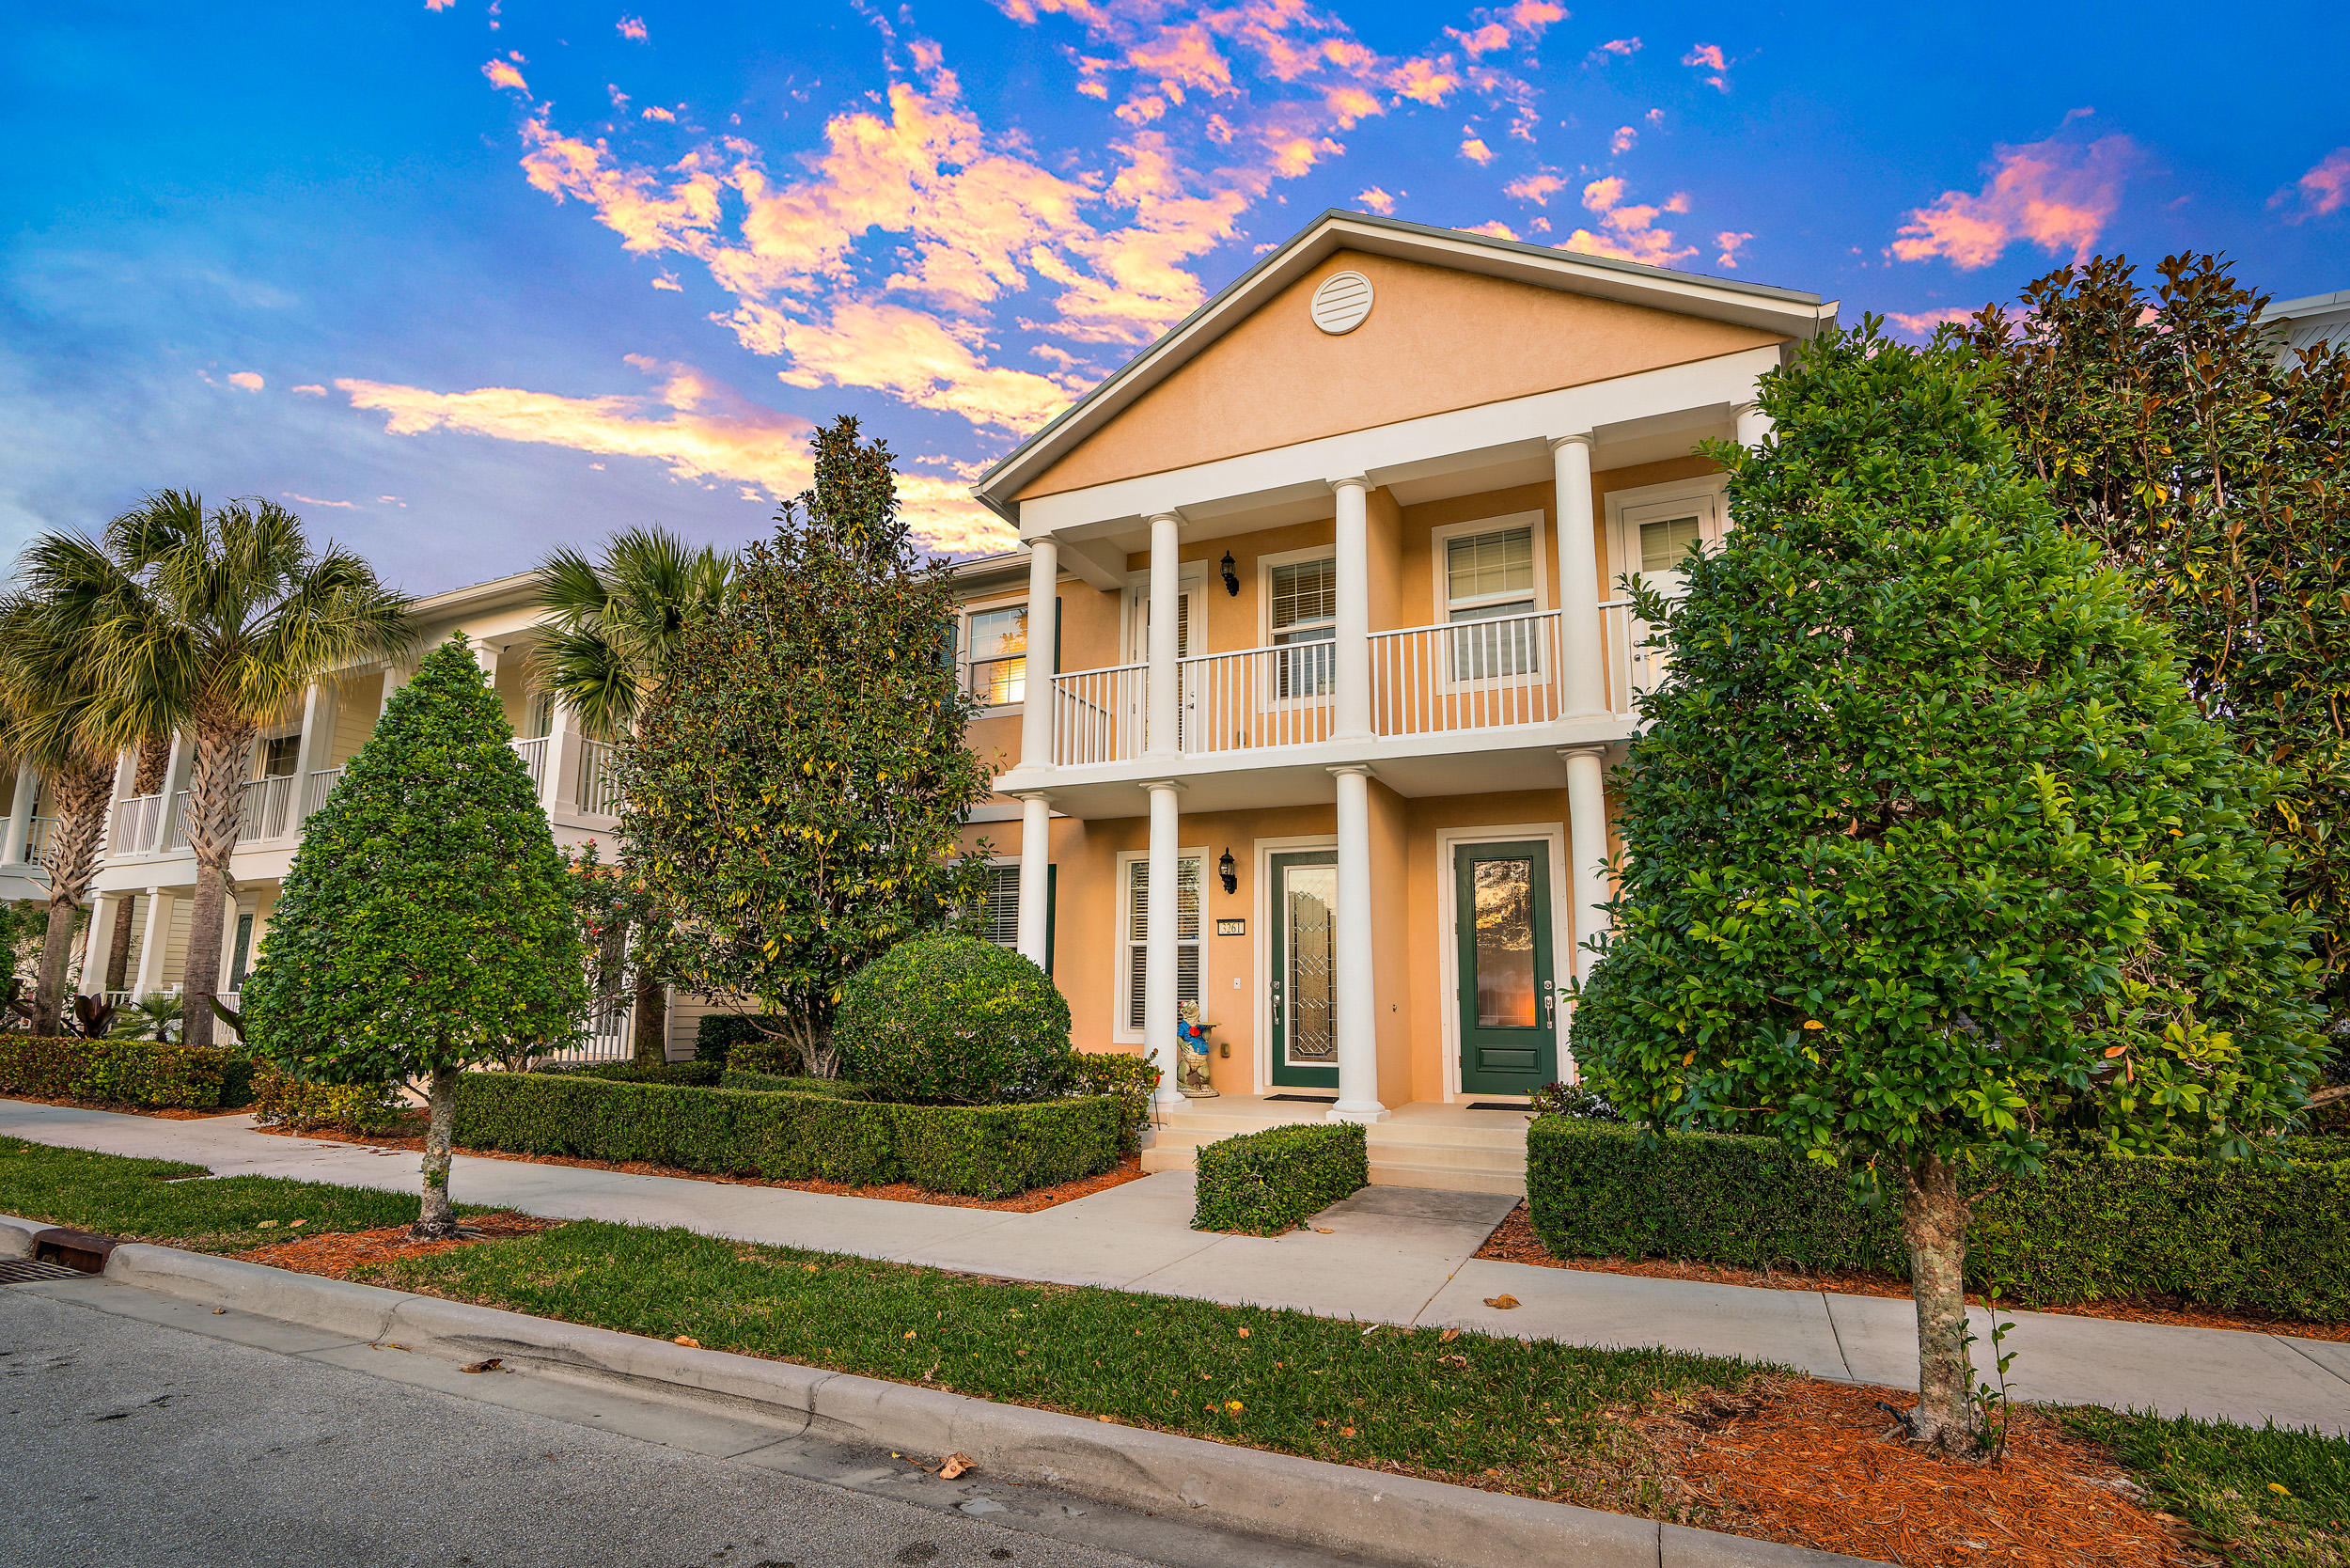 3261 Duncombe Drive, Jupiter, Florida 33458, 3 Bedrooms Bedrooms, ,2.1 BathroomsBathrooms,A,Townhouse,Duncombe,RX-10528057